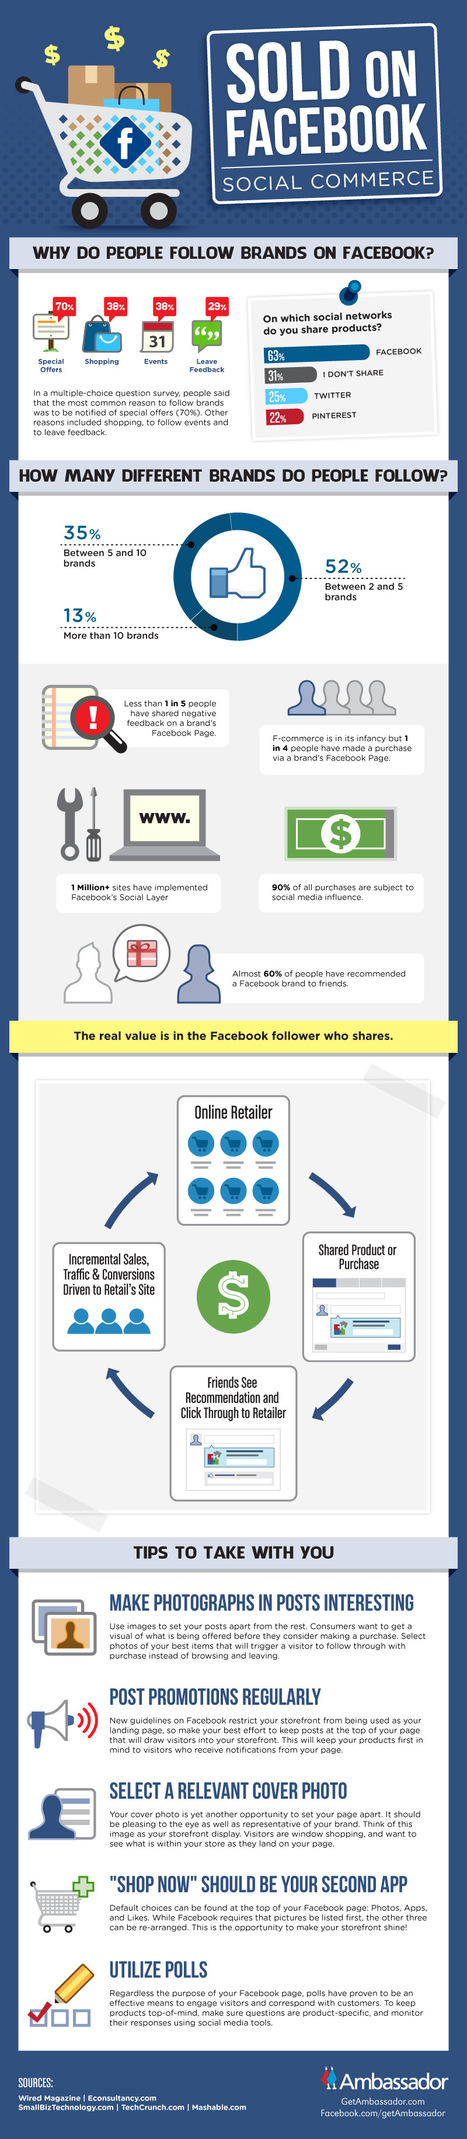 INFOGRAPHIC: What Makes People Sold On Brands On Facebook? | Social Media (network, technology, blog, community, virtual reality, etc...) | Scoop.it